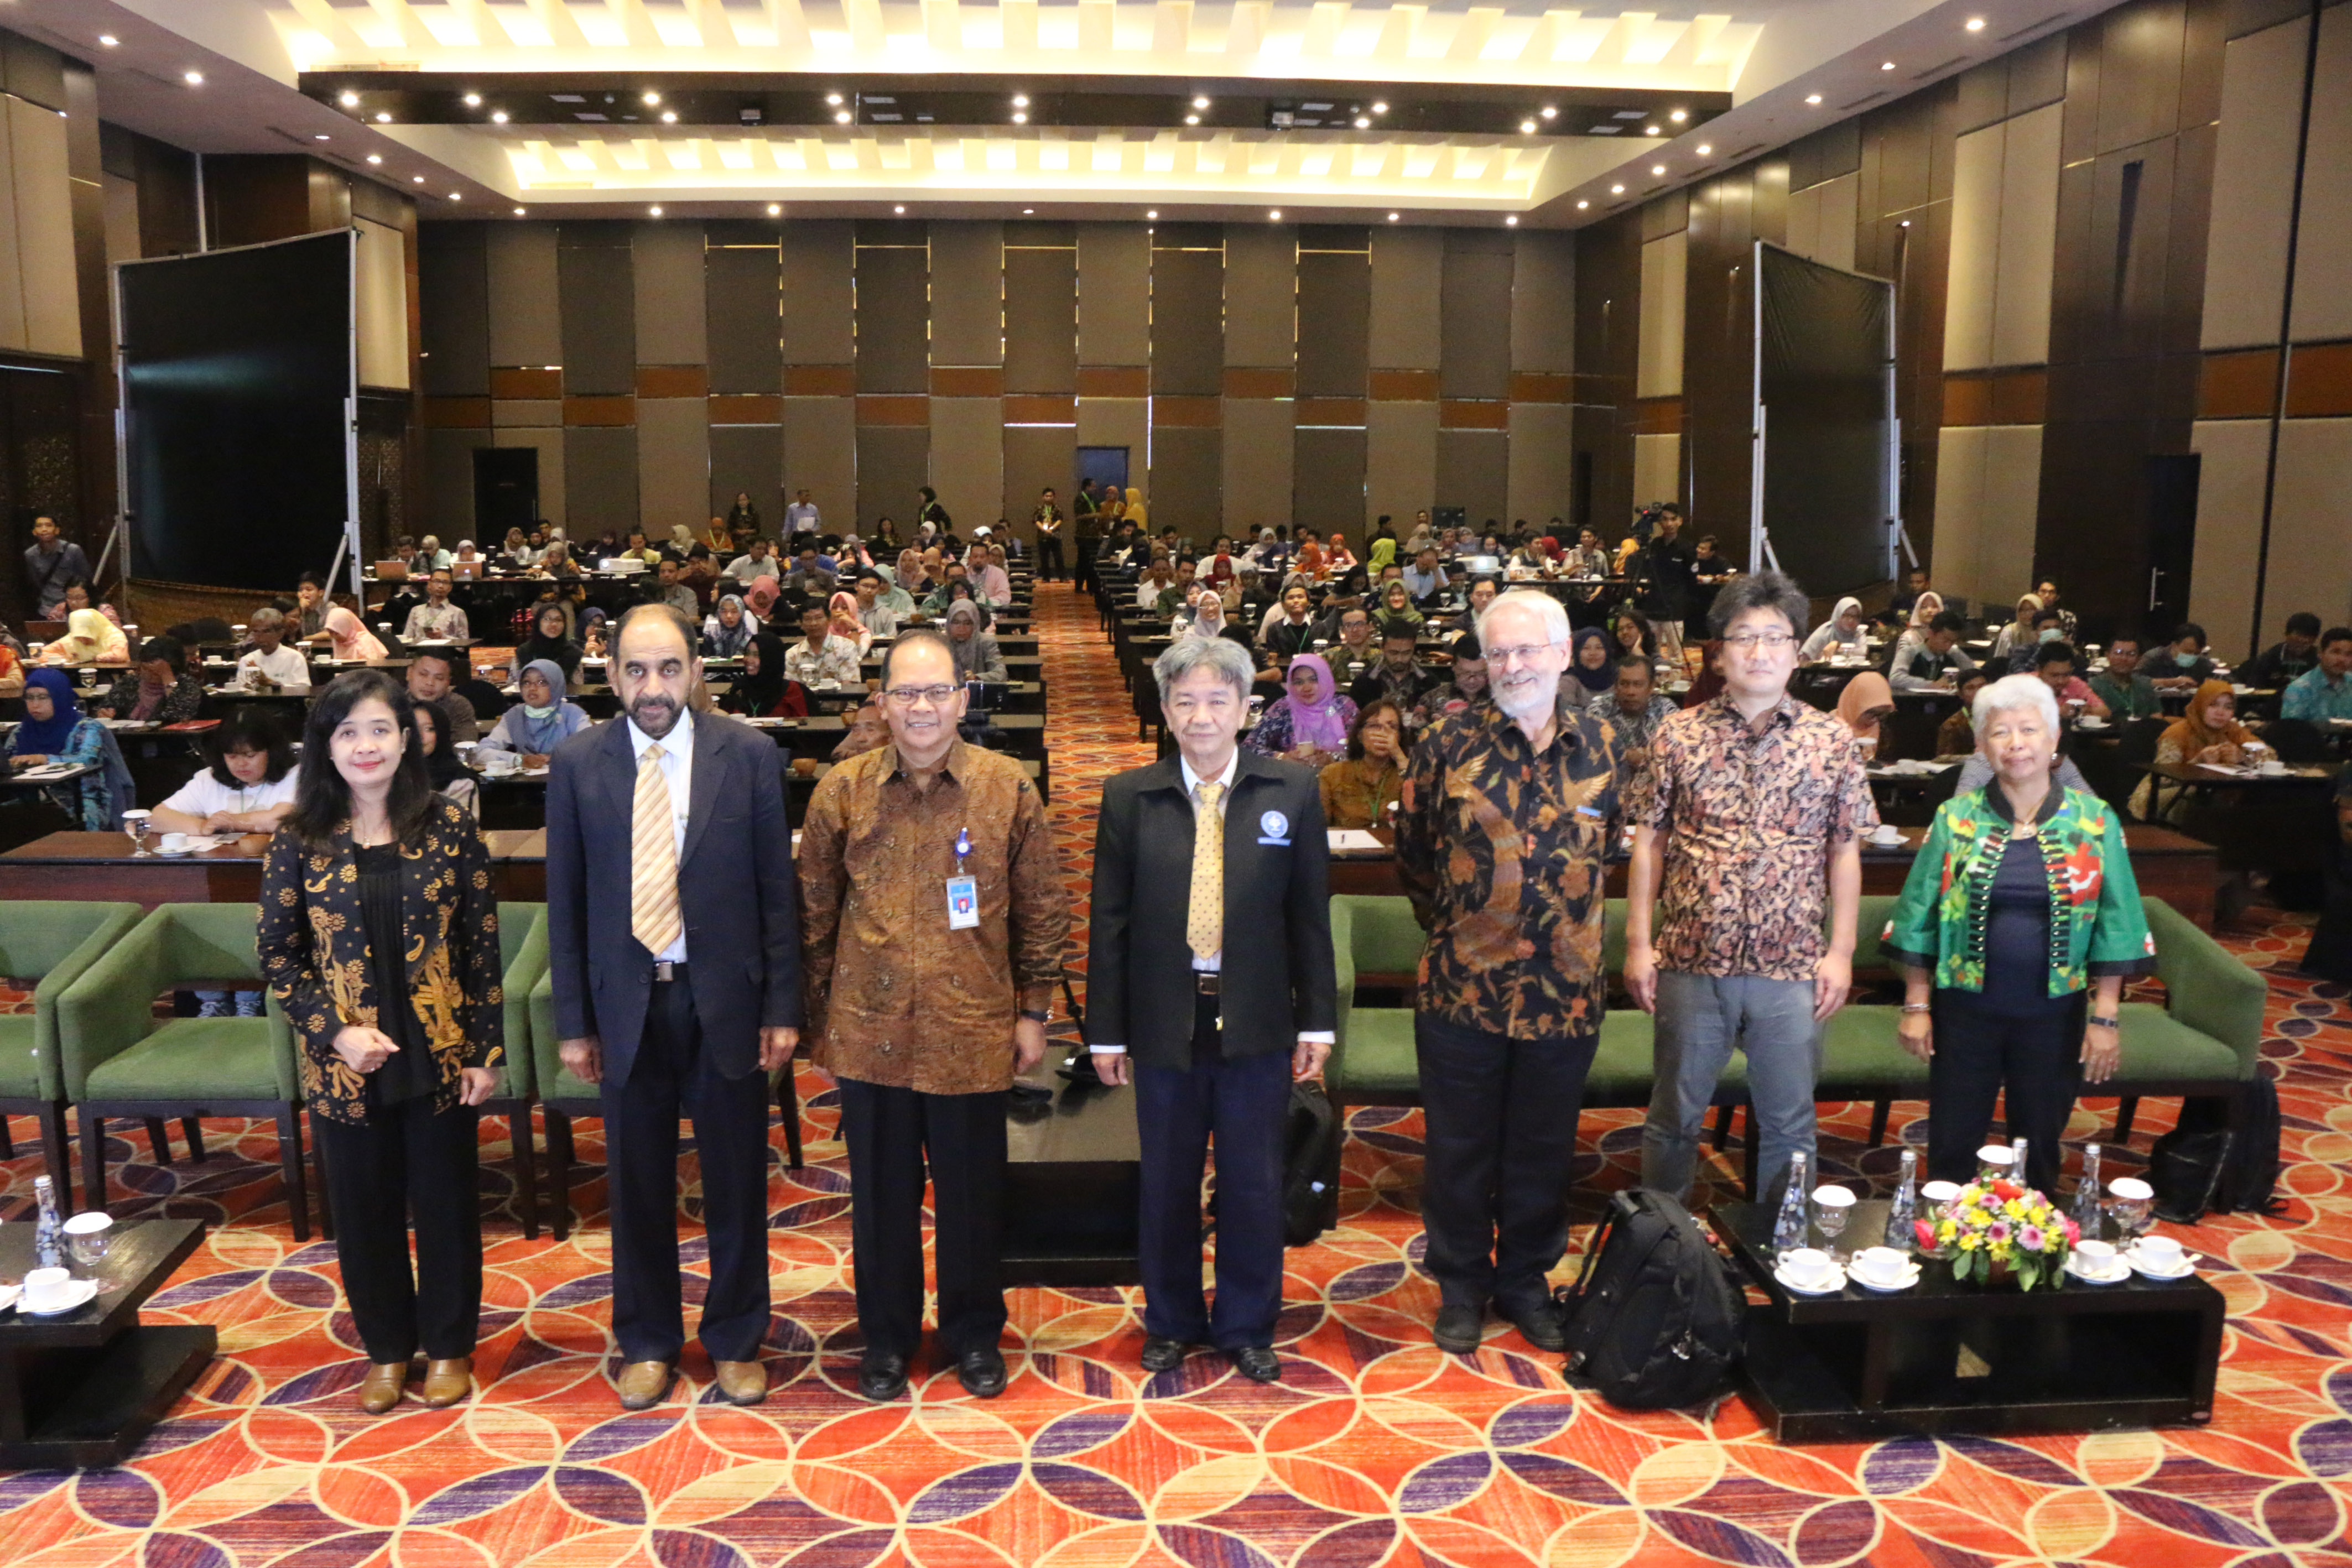 Wefie speakers and participants